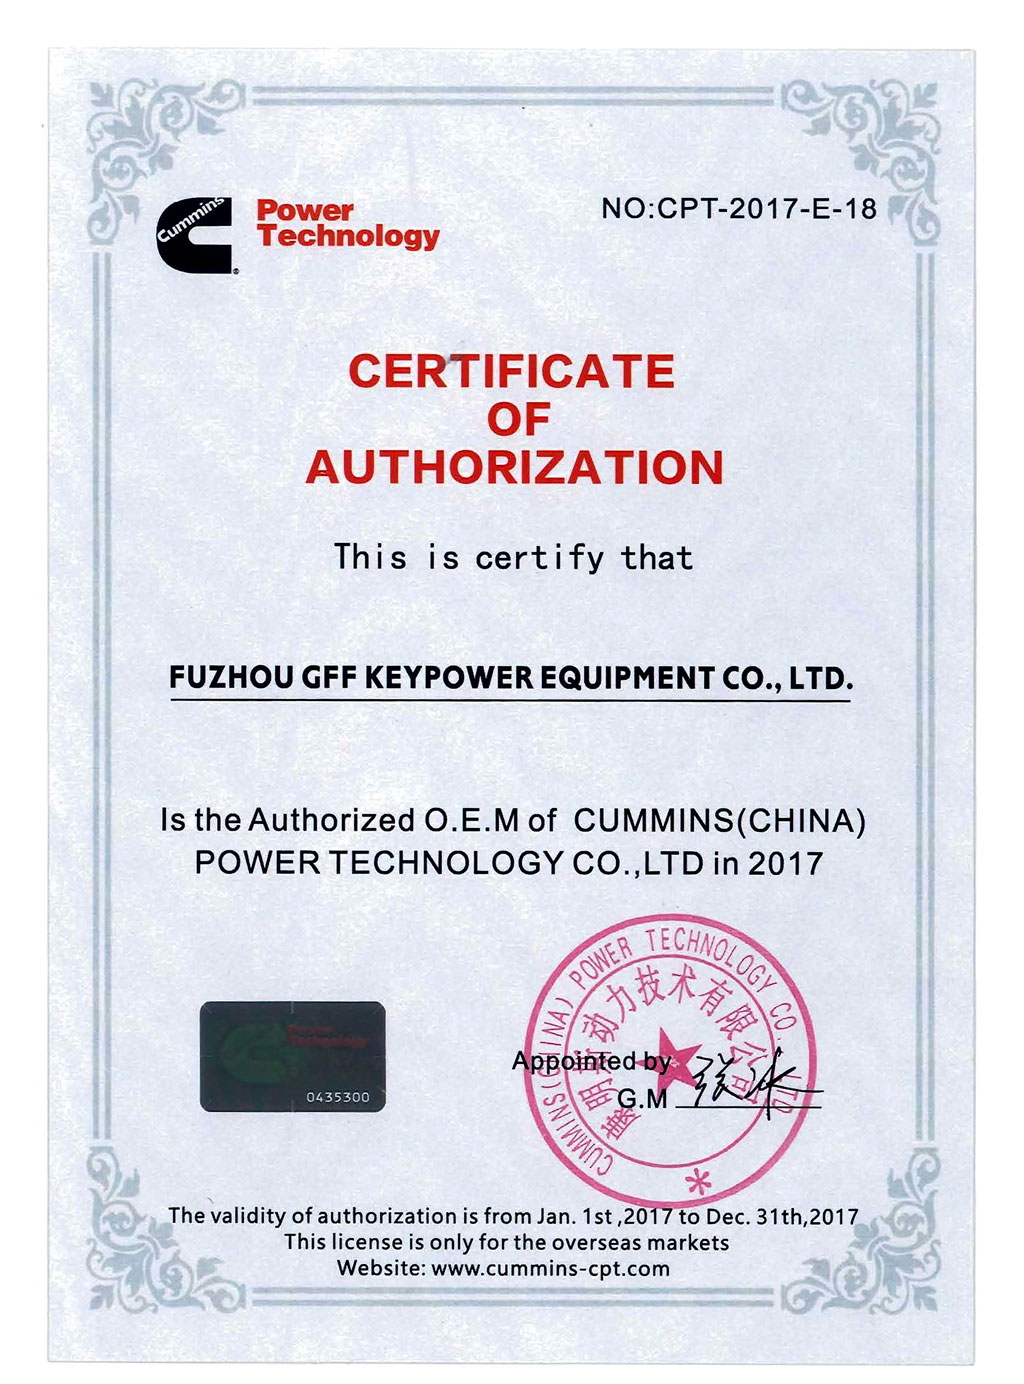 cummins(china)certificate of authorzation